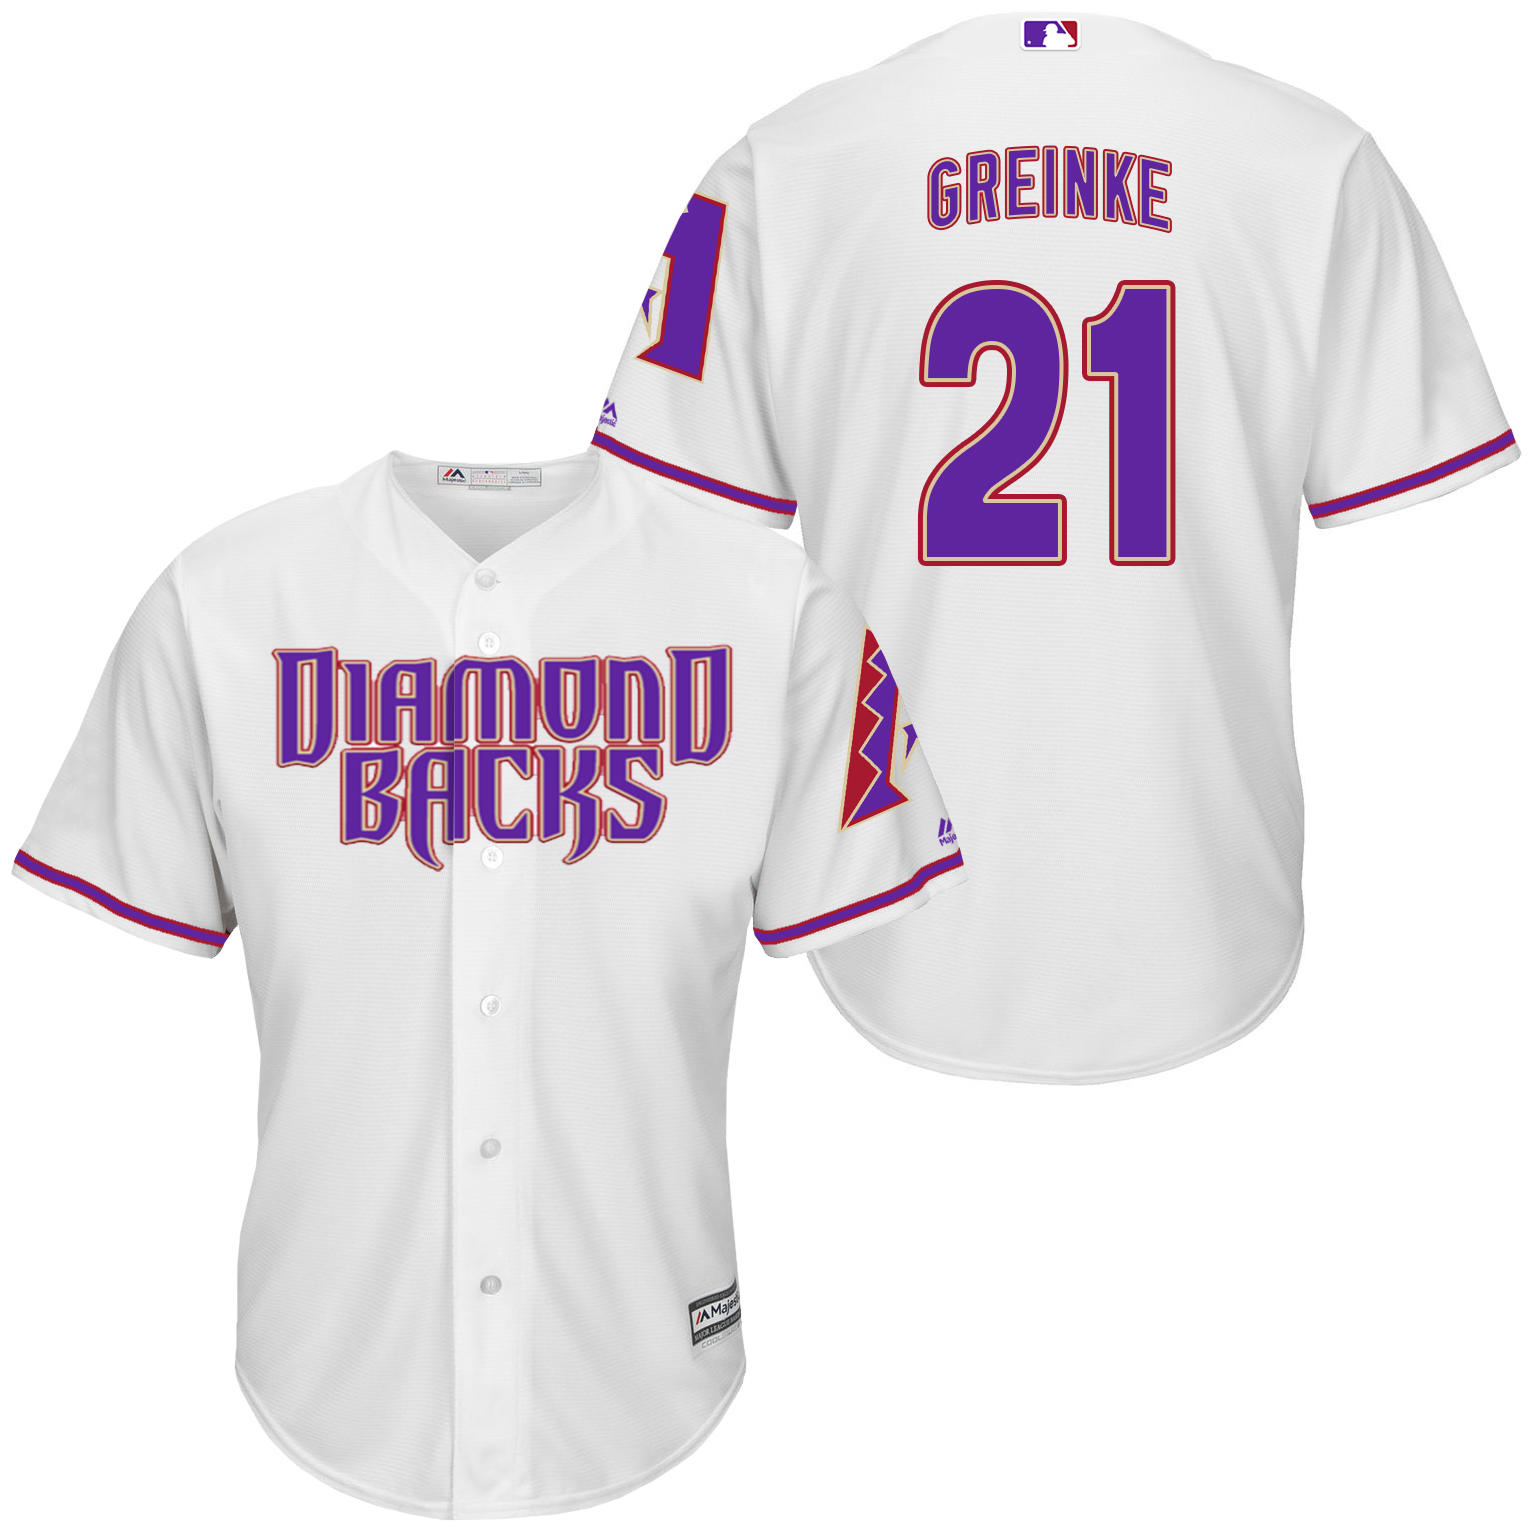 Diamondbacks 21 Zack Greinke White Purple New Cool Base Jersey